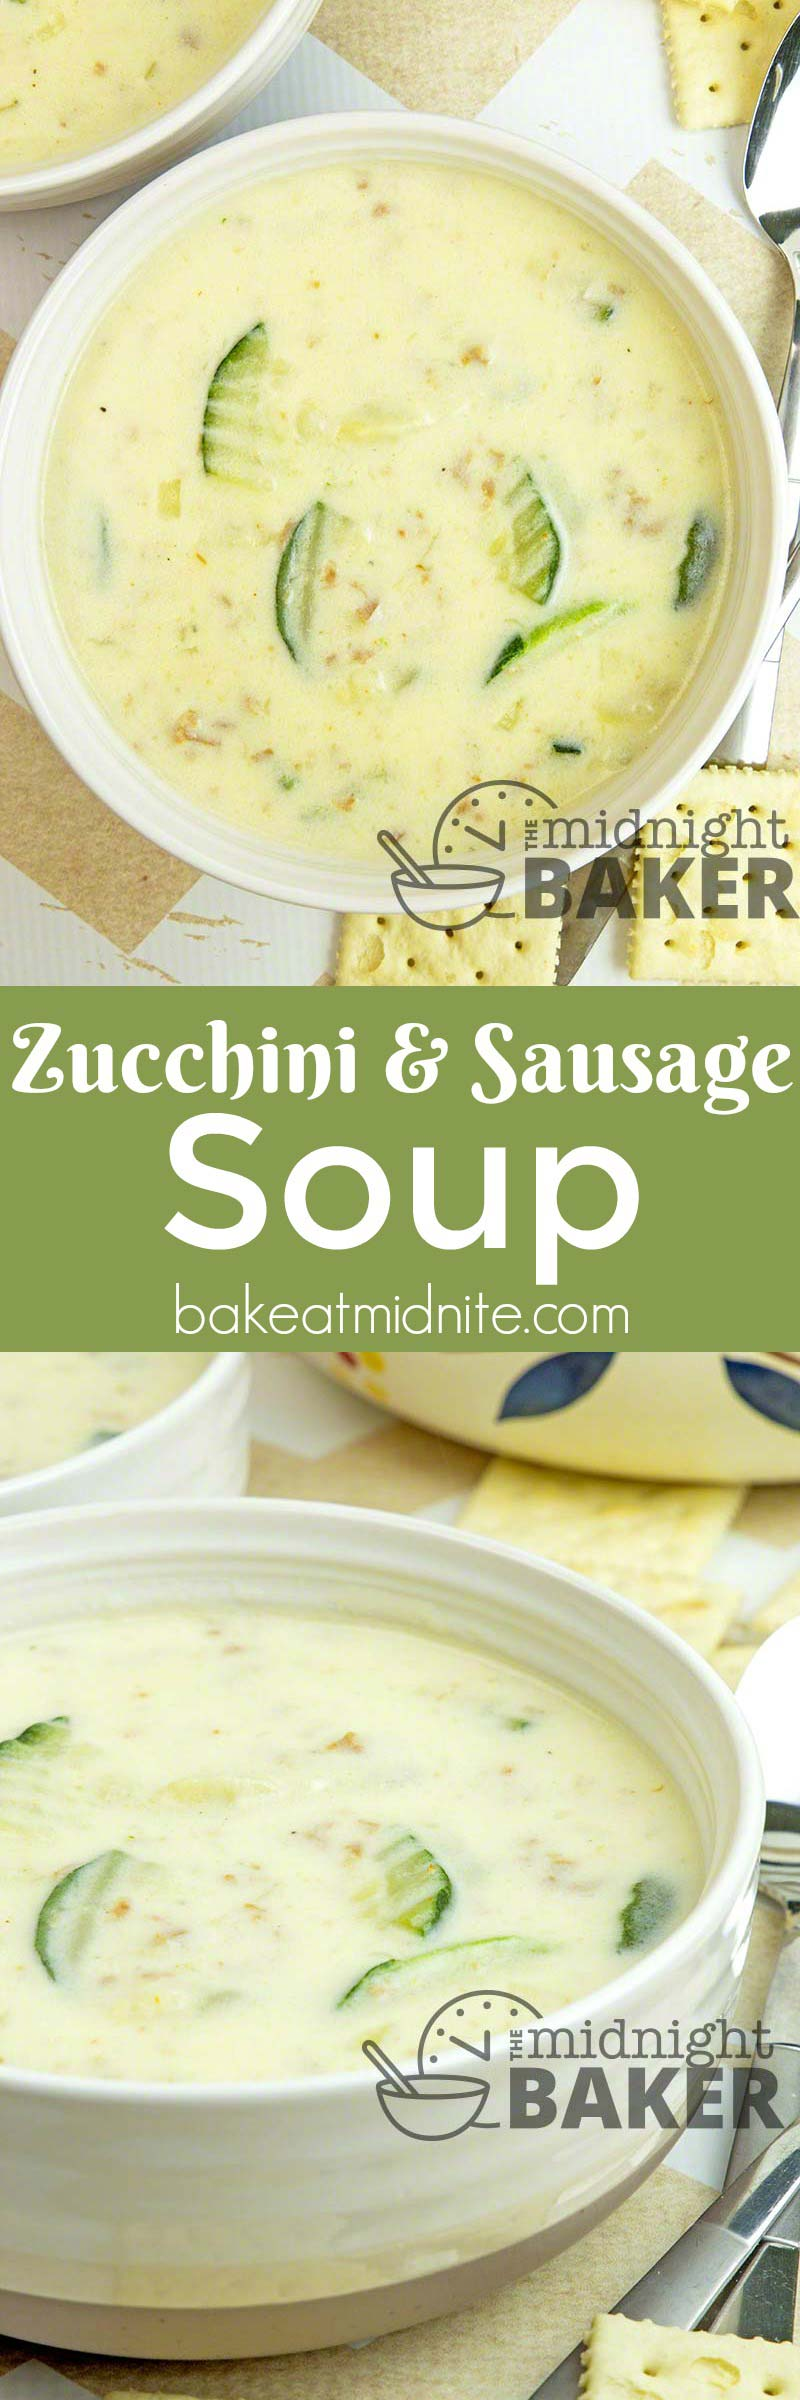 Use up some of that summer zucchini in this hearty soup